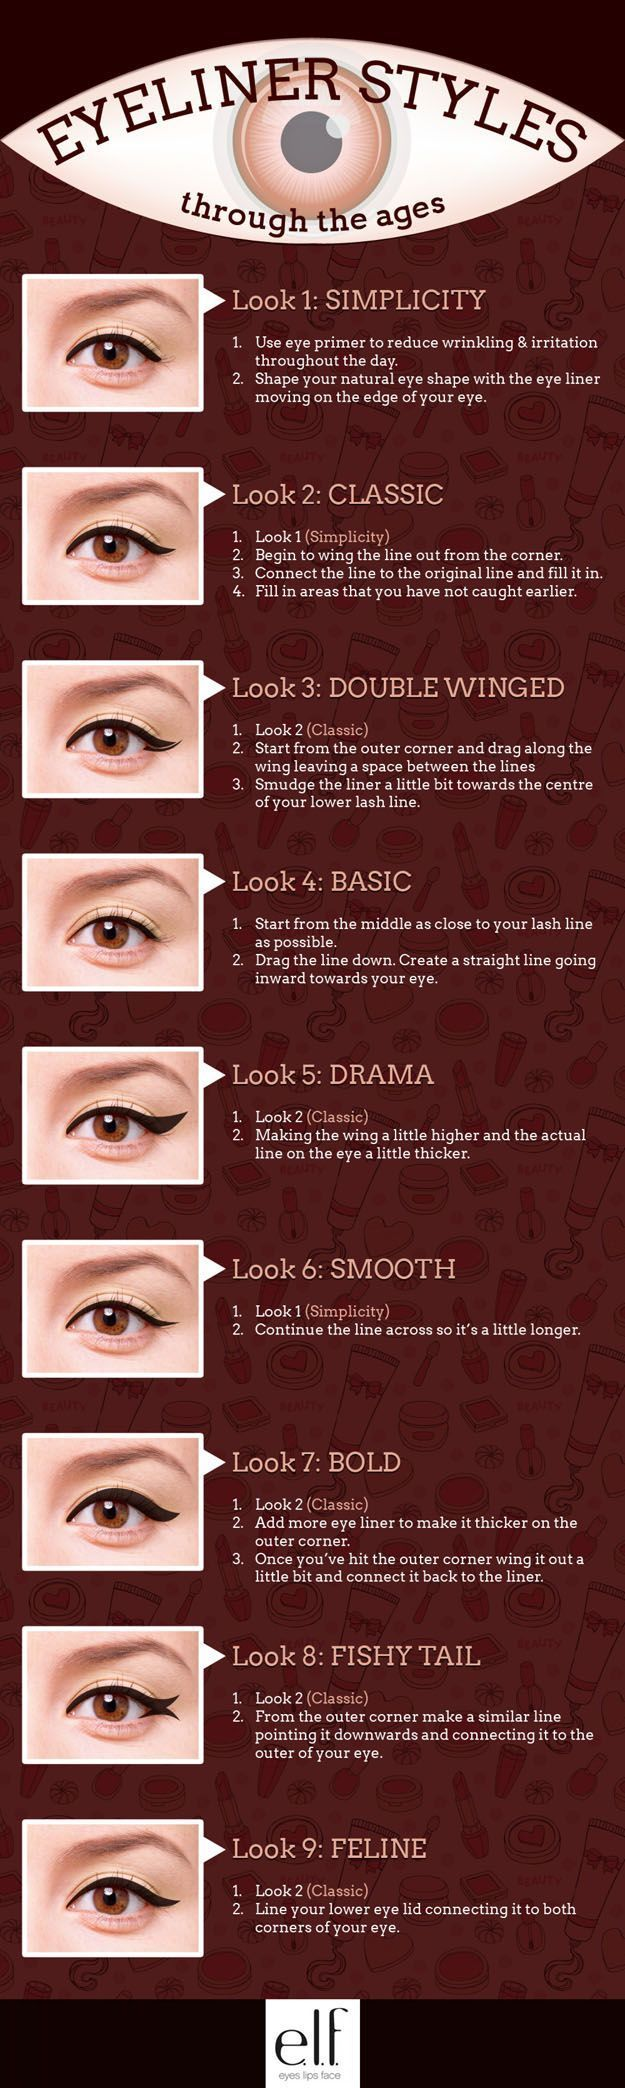 Eyeliner through the Ages | Simple Eyeliner Tutorials for Perfect Eyeliner Looks by Makeup Tutorials at http://makeuptutorials.com/makeup-tutorials-beauty-tips #slimmingbodyshapers   To create the perfect overall style with wonderful supporting plus size lingerie come see   slimmingbodyshapers.com